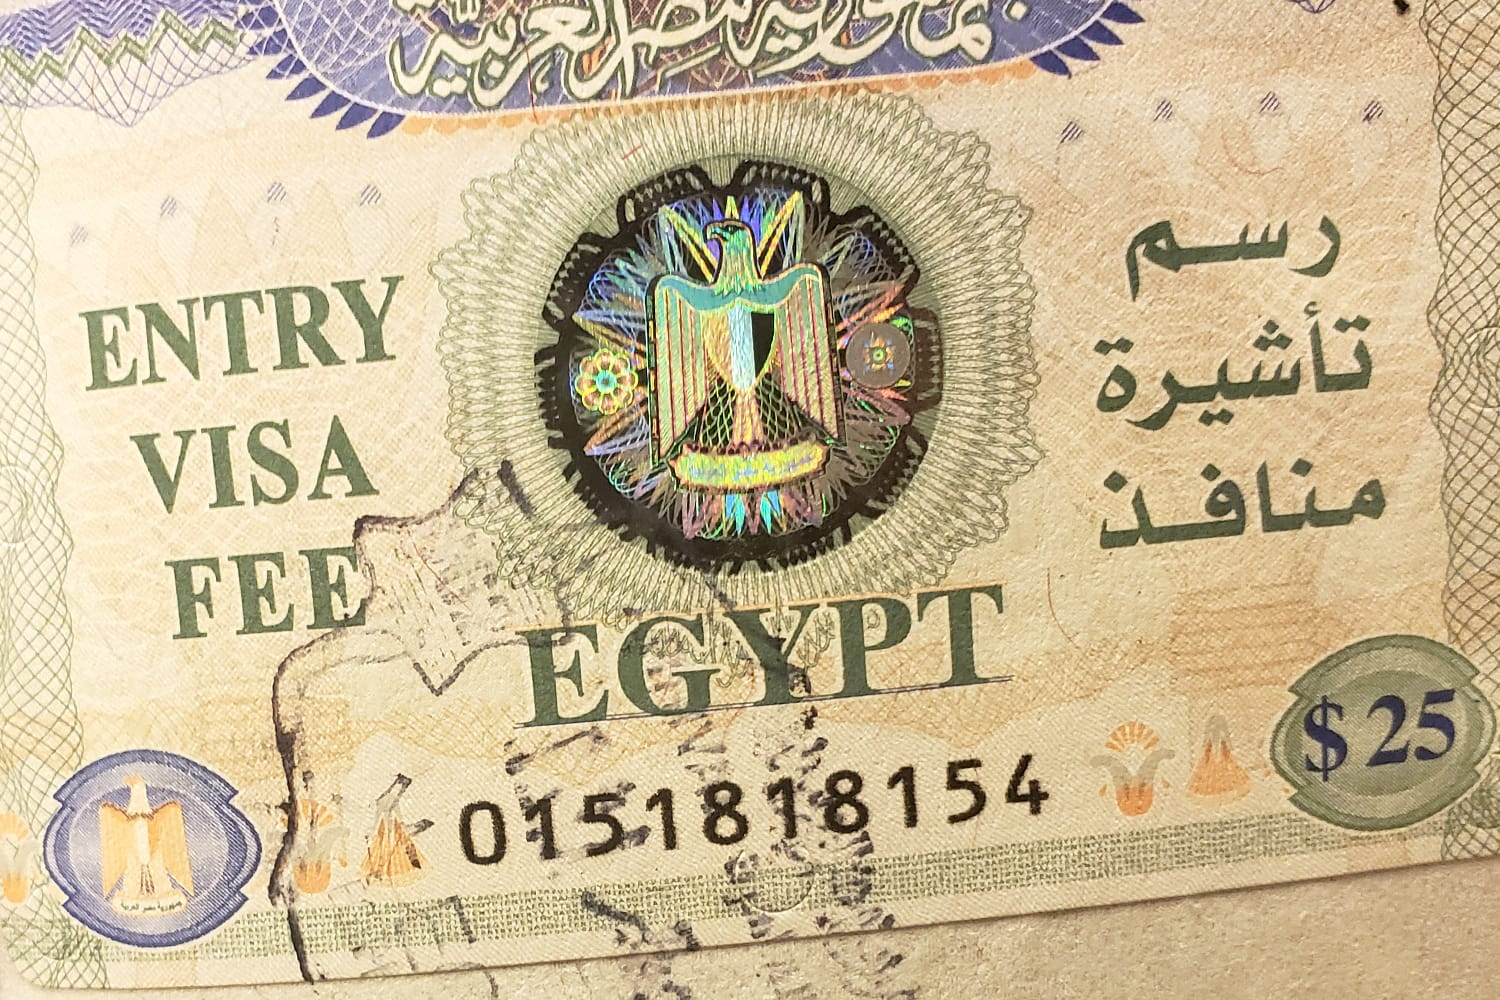 Everything You Need To Know About The Egypt Visa Road Affair